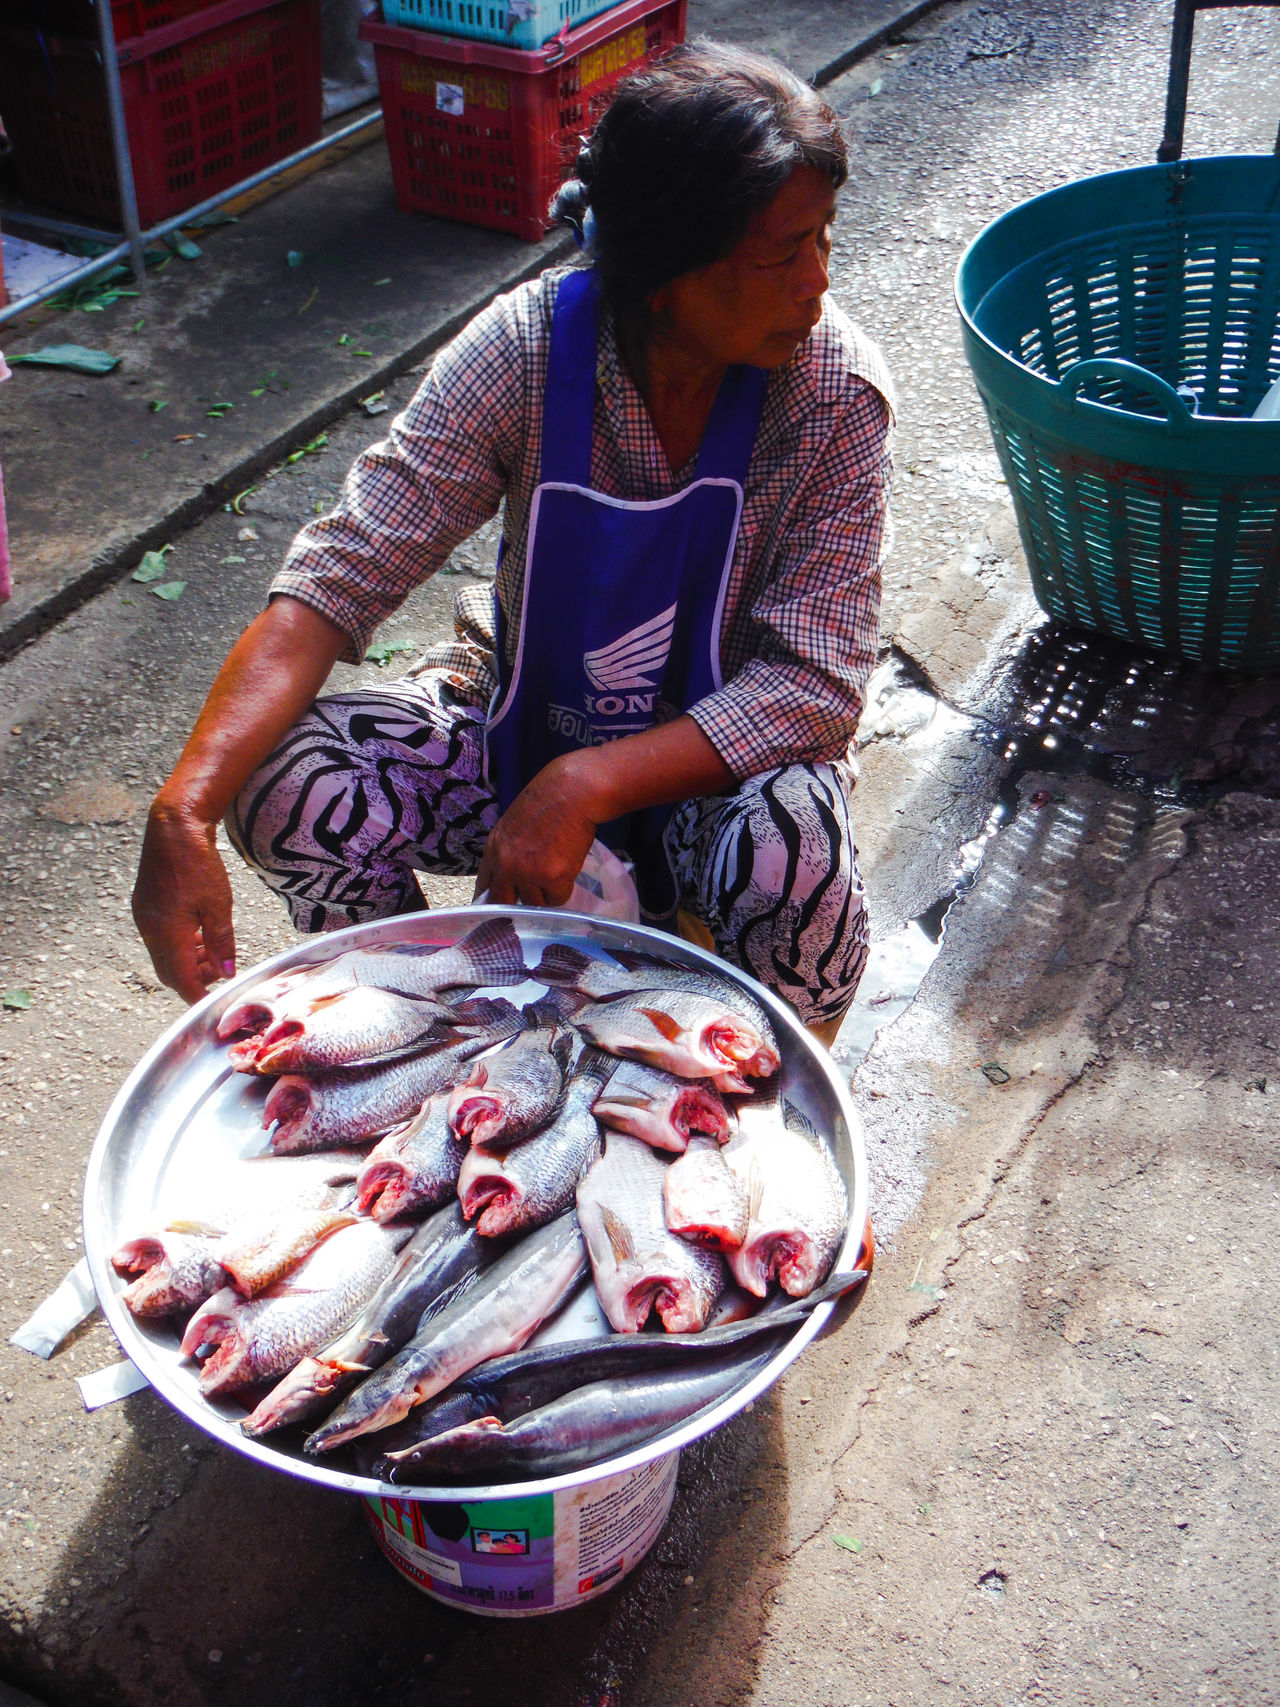 At the local market Sattahip Thailand Fish Market Freshness Fresh Fish Market Fresh Fish Dead Fısh Fish Fish For Sale For Sale Local Market Thai Market FishMarket Seafood Market Portrait Natural Light Portrait Natural Light Thai Woman Thai Person Morning Market Everyday Lives Everyday Life Person Day